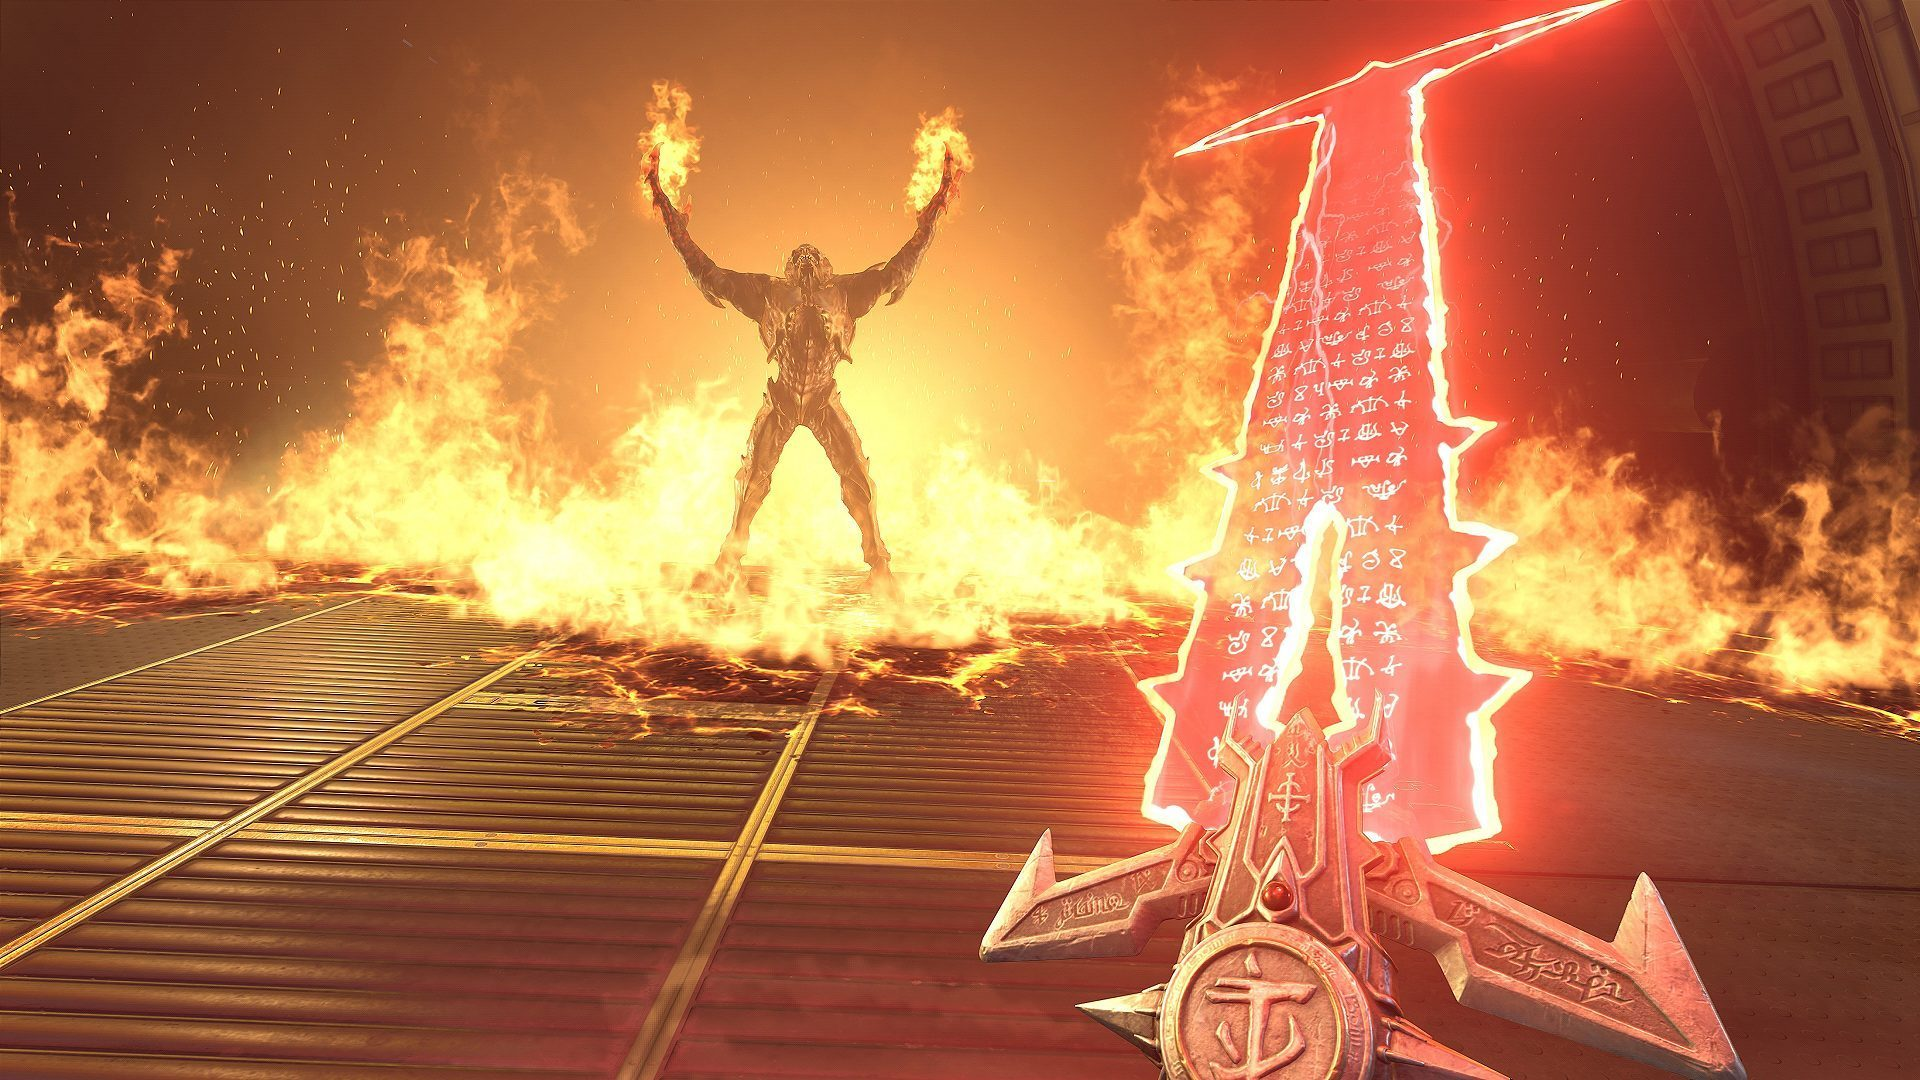 A still of Doom Eternal, where the Doom Slayer wields a demonic sword